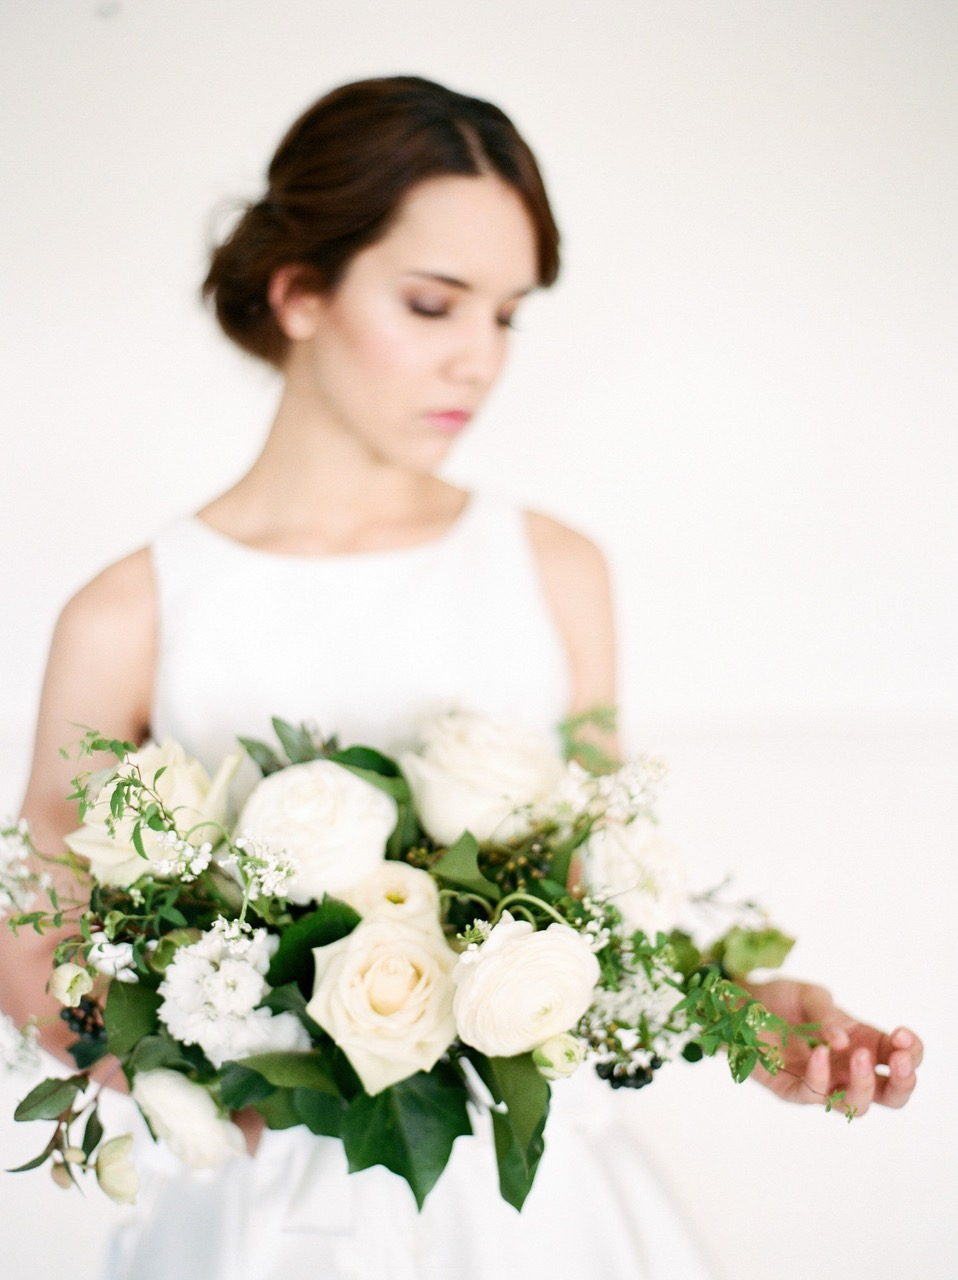 Studio Flora Co - Hopewood House - Rainy Day Weddings Shoot - Bride and Florals.jpg